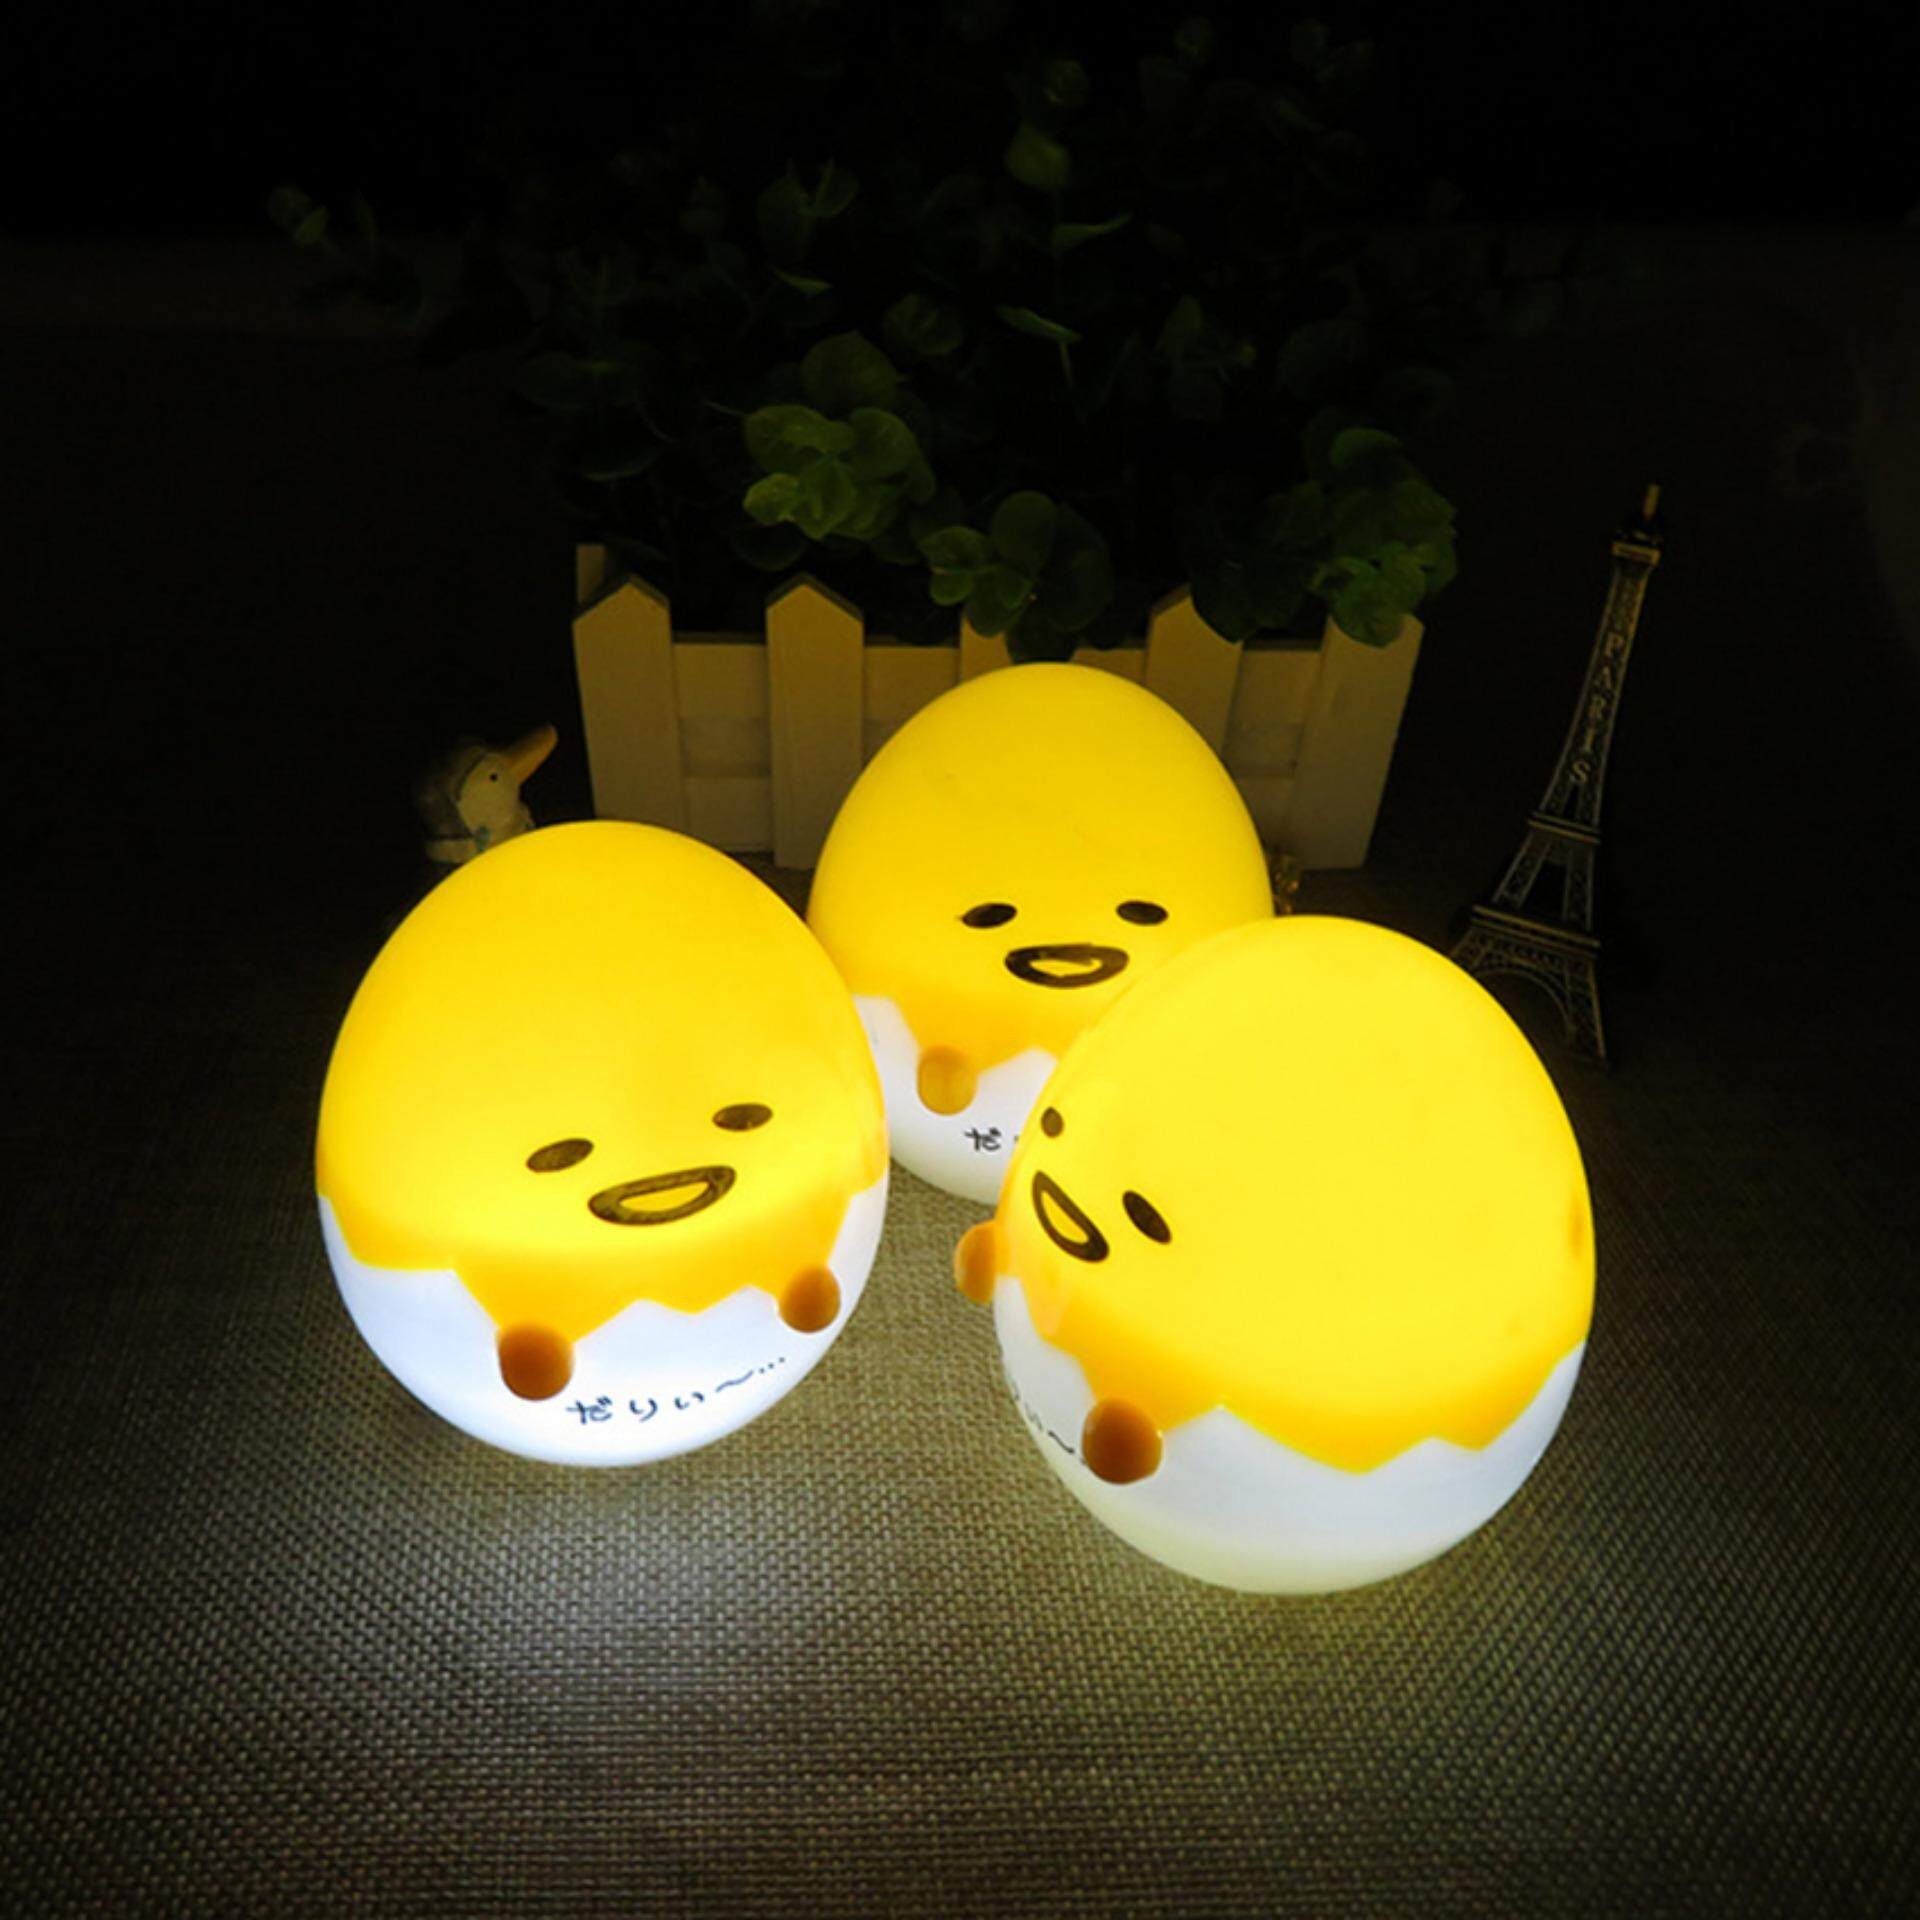 Night lights buy night lights at best price in singapore www kawaii mini japan anime harajuku gudetama lazy egg 8cm mini lamp cute small night light figure mozeypictures Choice Image